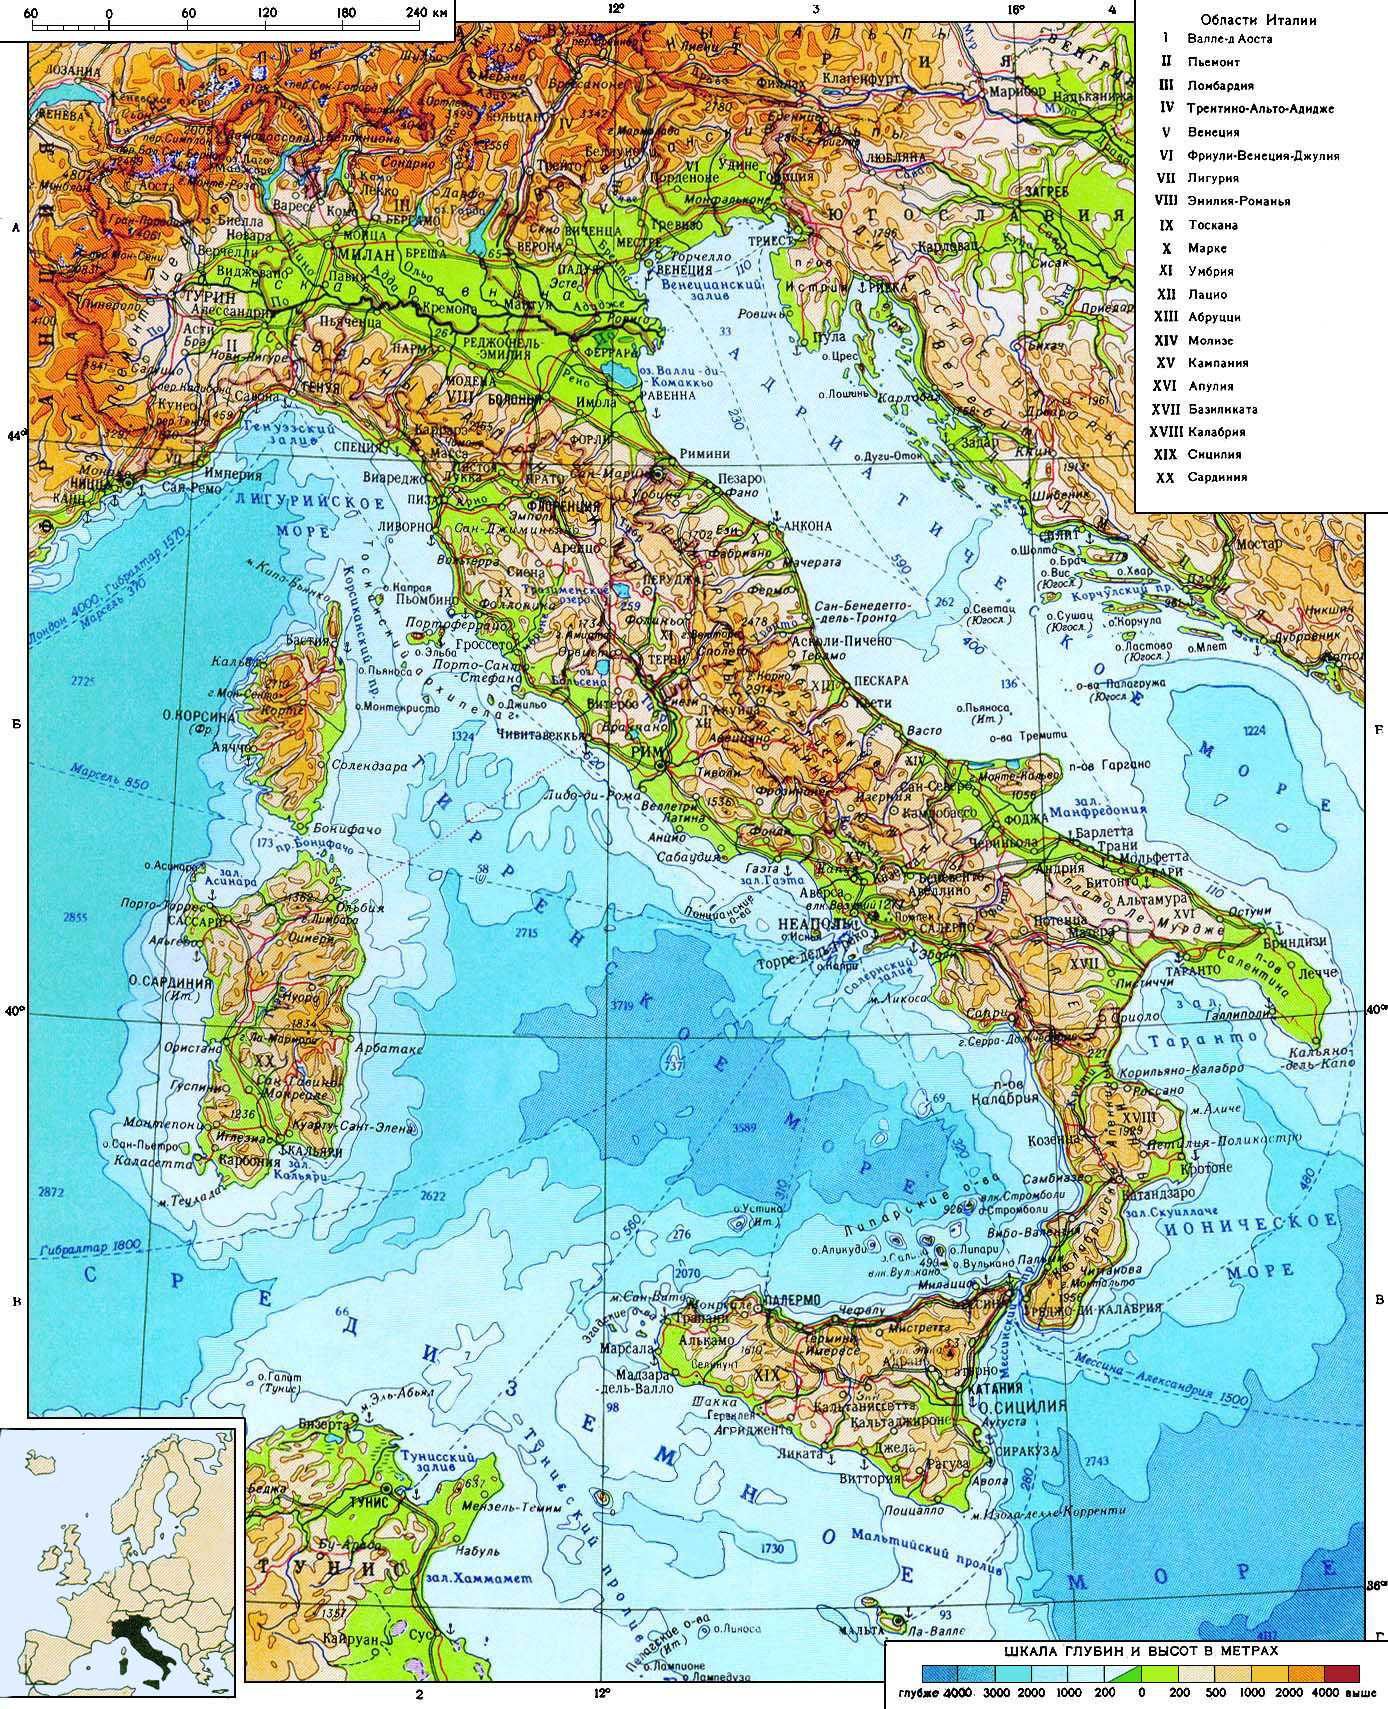 Detailed Map Of Italy With Cities on detailed map of positano italy, detailed map of lazio italy, detailed map of texas cities, detailed map of northern italy, detailed map southern italy, detailed map of calabria italy, all of italy maps with cities, detailed map of italy print, italy and cities, detailed map of tuscany italy, detailed map of massachusetts cities, detailed map florence italy, detailed map of africa, detailed map asia, detailed map of southern spain, detailed map venice italy,